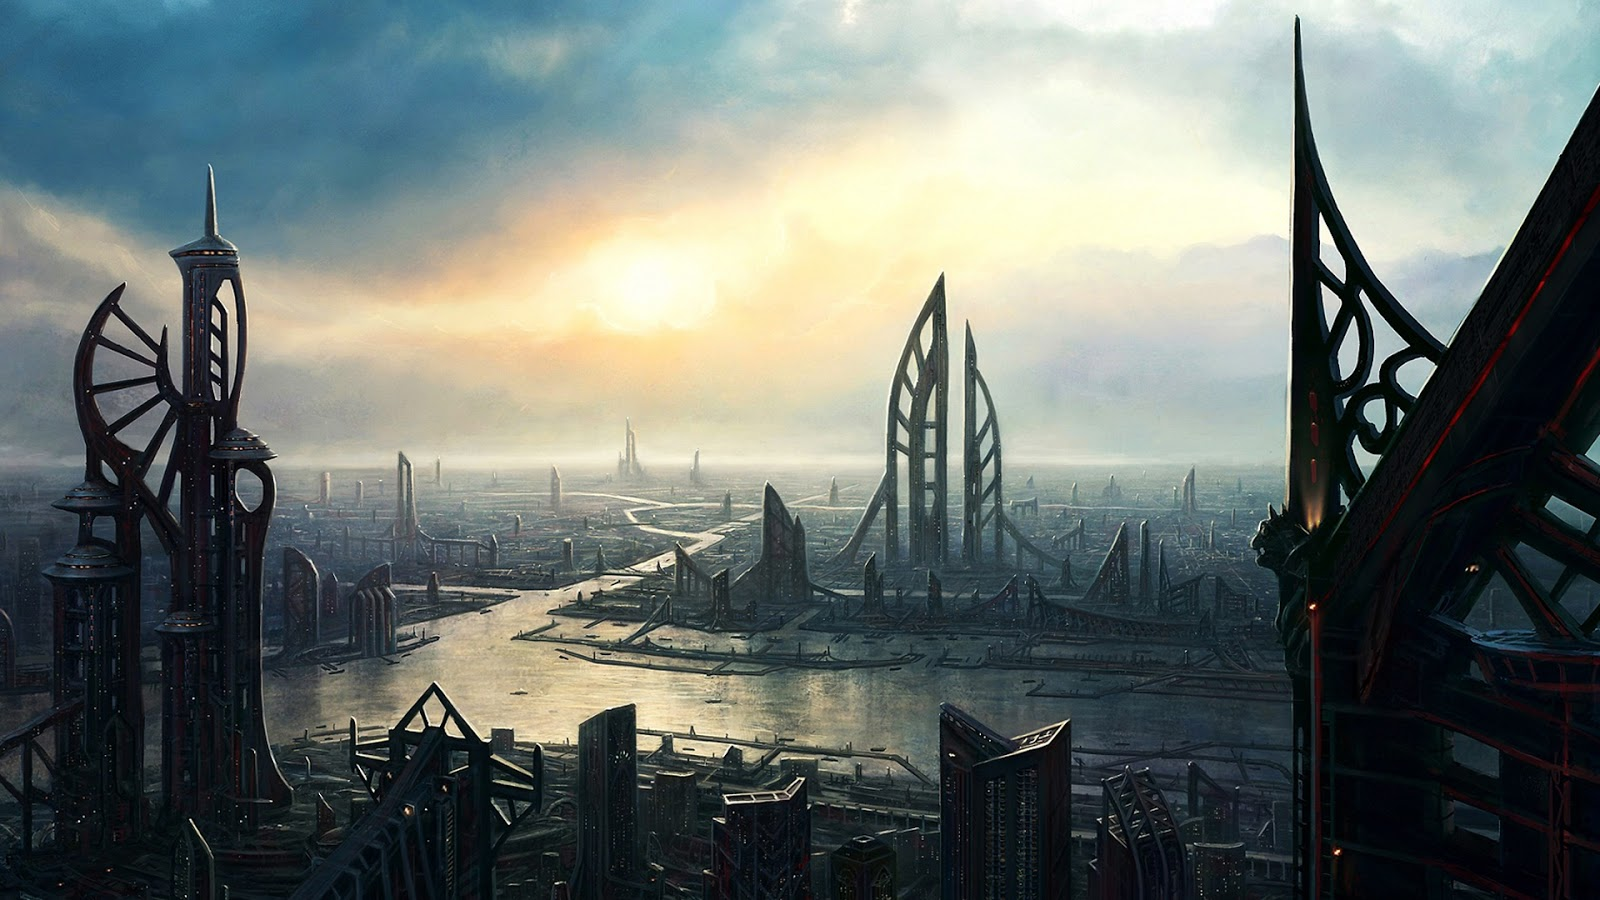 futuristic buildings of a mystical planet